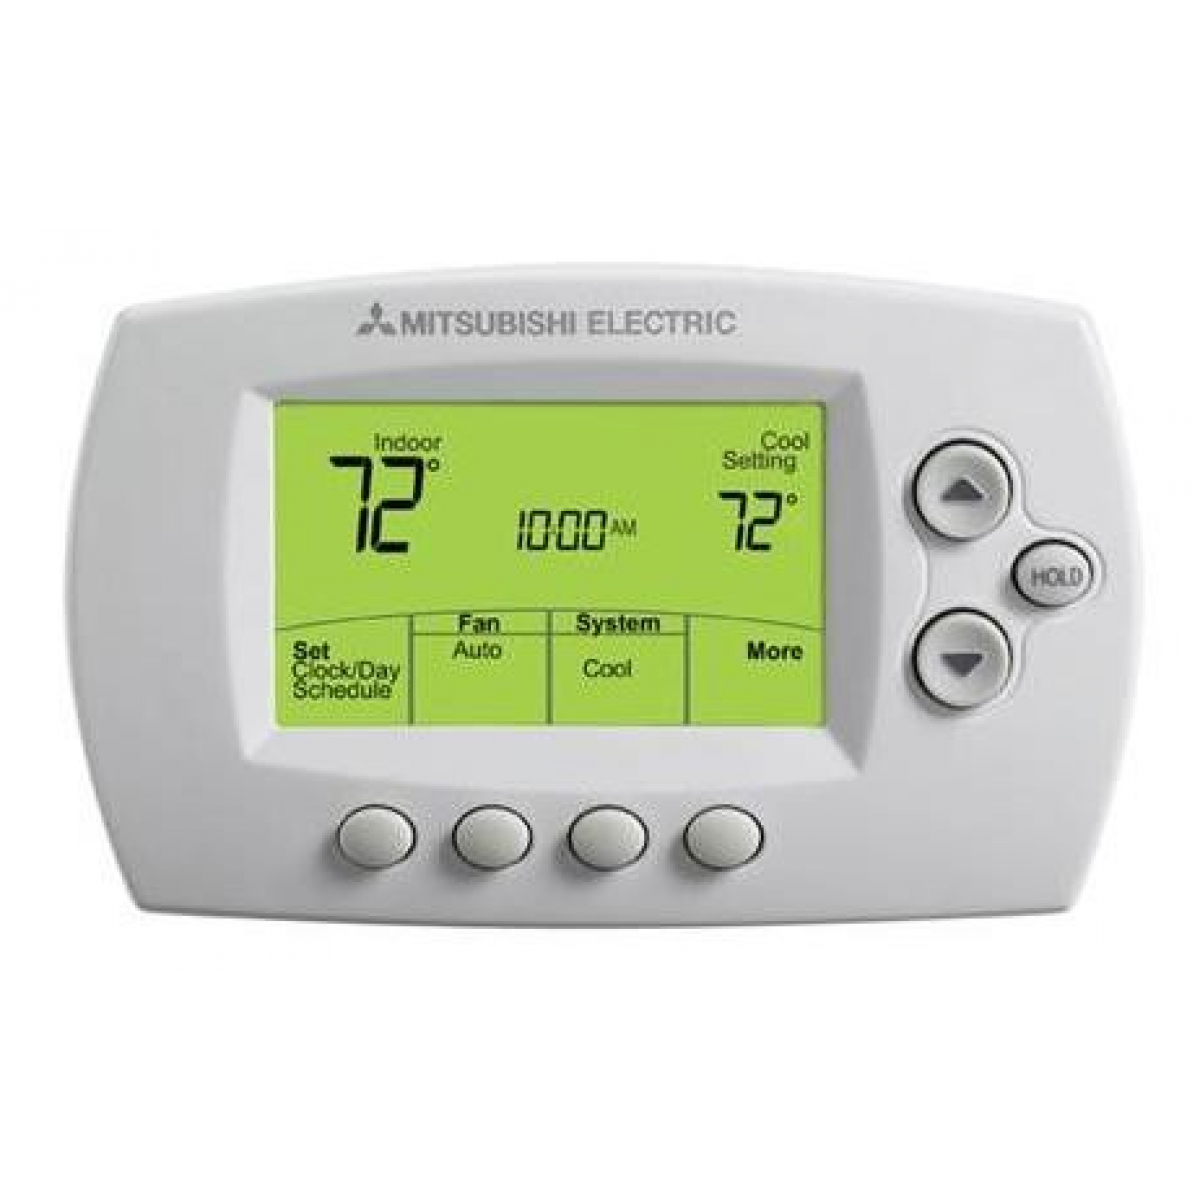 Ultrastat Thermostat Manual User Guide That Easy To Read Wiring Honeywell